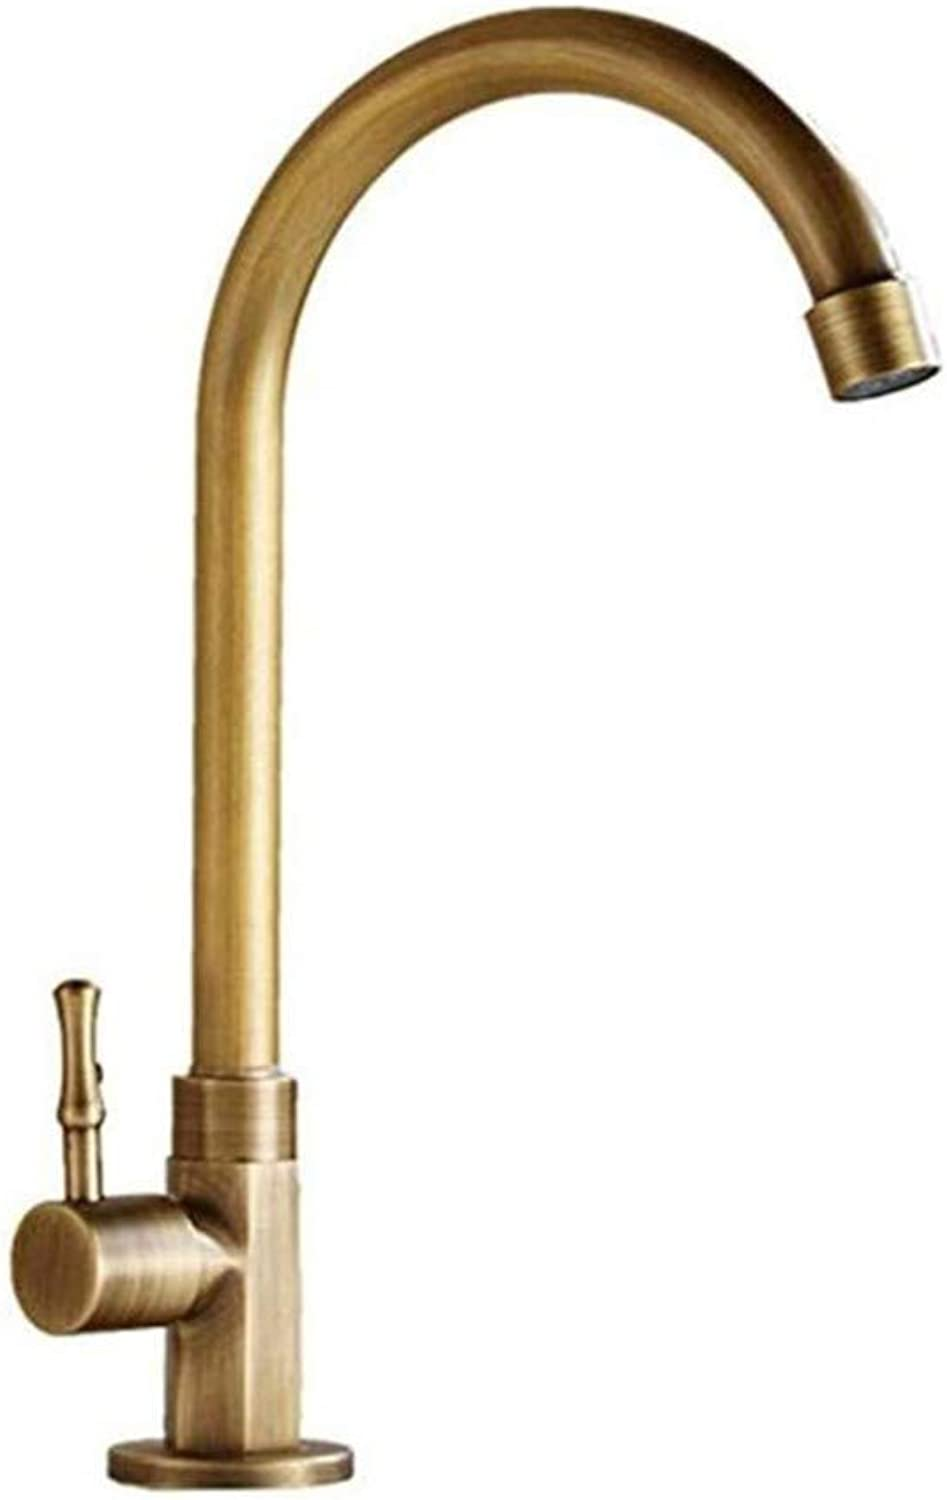 Basin Taps Swivel Spout Faucet Copper Basin Faucet Antique Single Cold Bathroom Sink Brass Taps Vintage Single Hole Single Handle